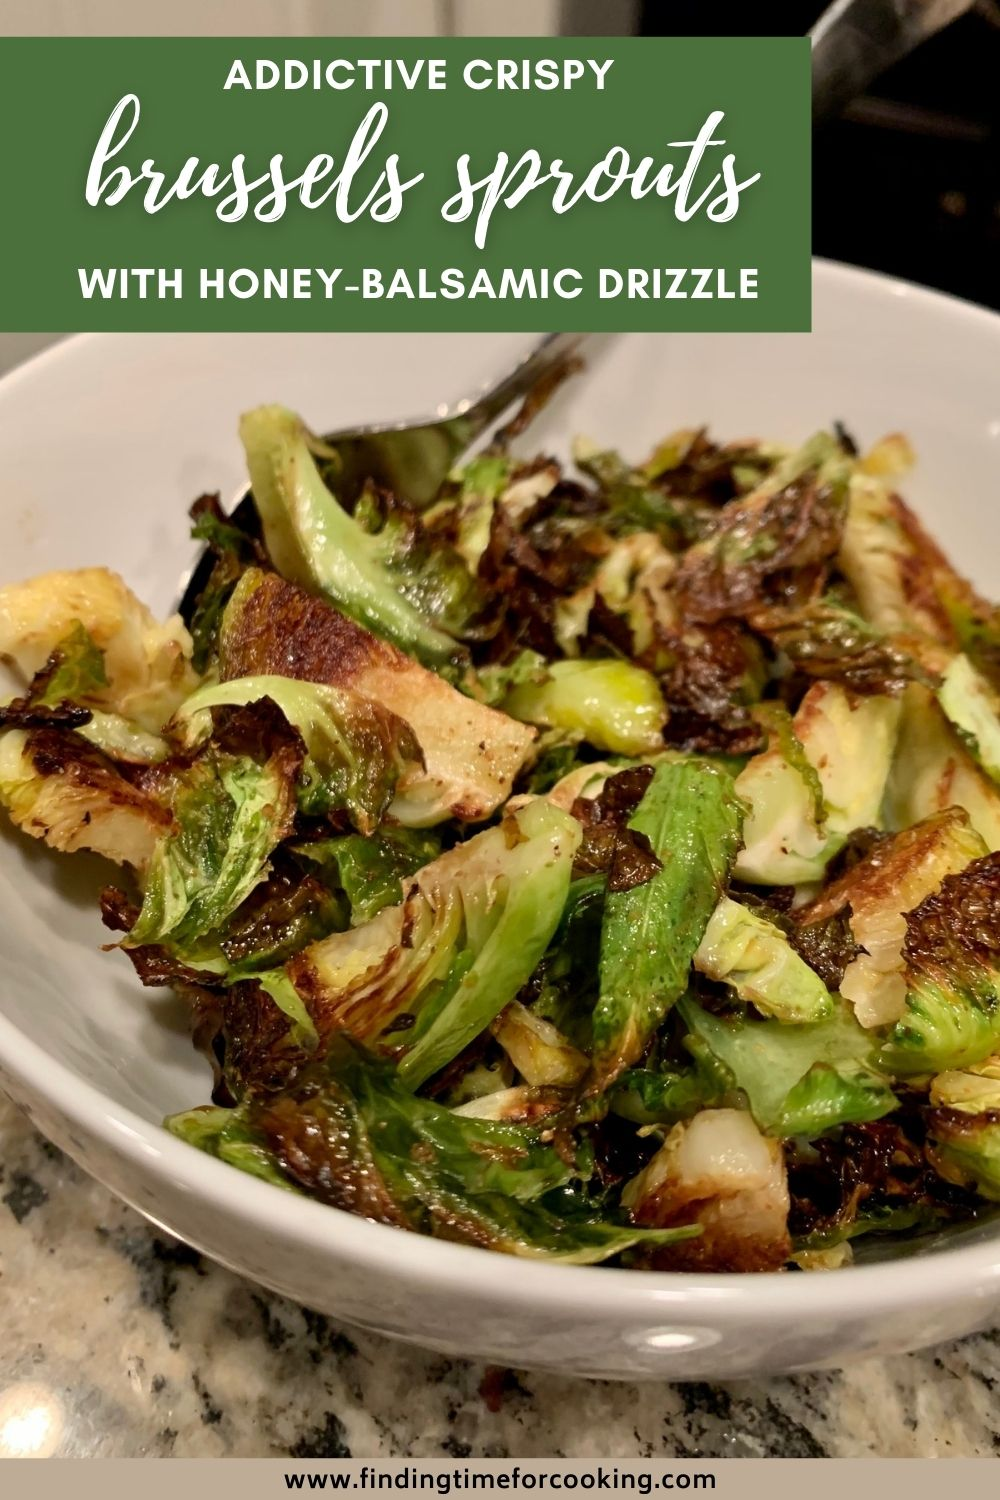 Crispy Roasted Brussels Sprouts with Balsamic-Honey Drizzle | These roasted brussels sprouts are totally addictive and super easy, perfect for any weeknight but also a fancy holiday dinner. You need these honey balsamic brussels sprouts in your life! Delicious flavor combo, ingredients you have in your pantry, healthy side dish recipe or vegetable recipe. #brusselssprouts #balsamic #honey #sidedish